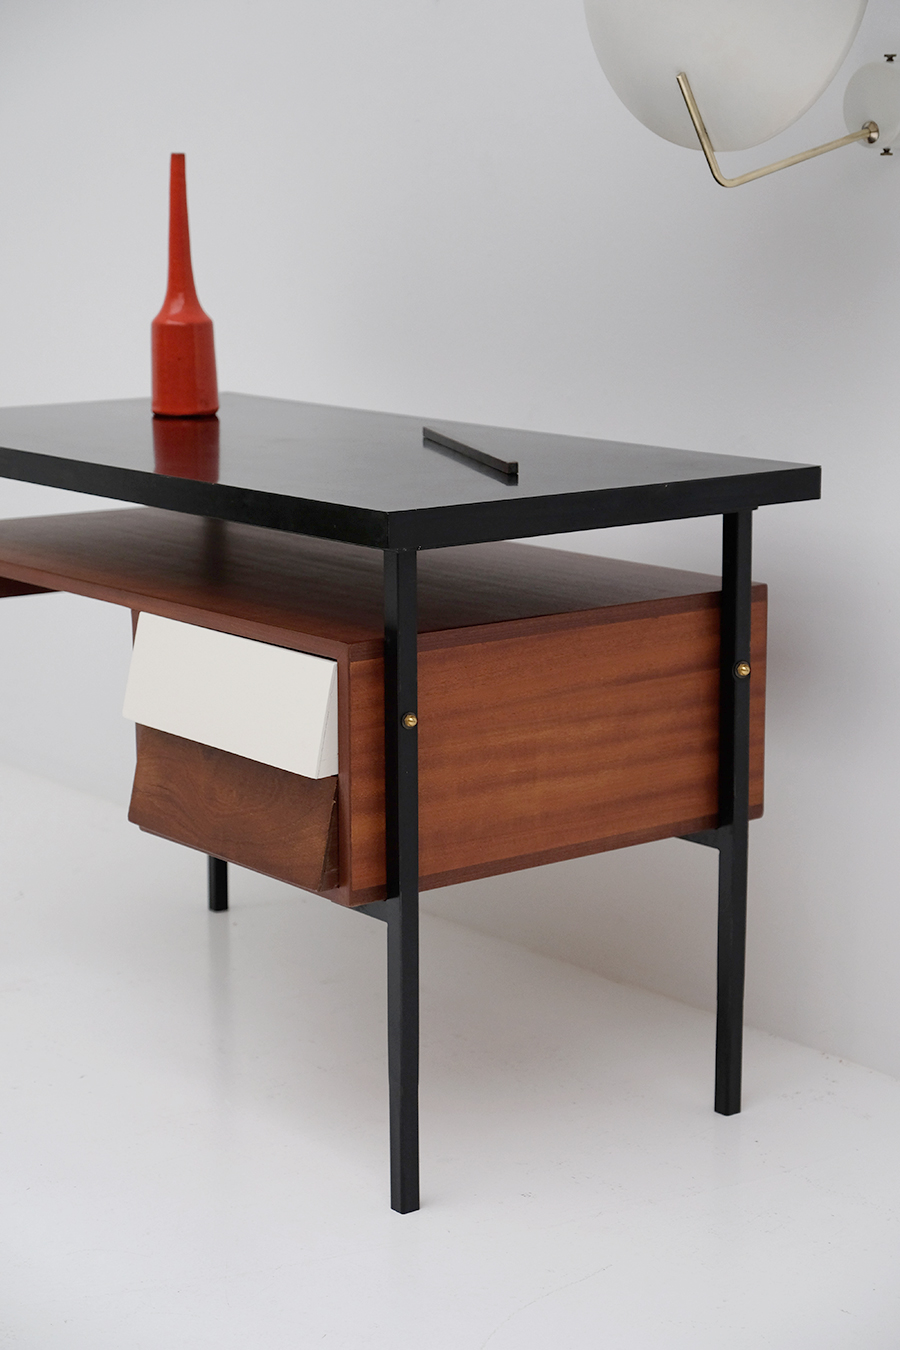 1950s desk with formica table top